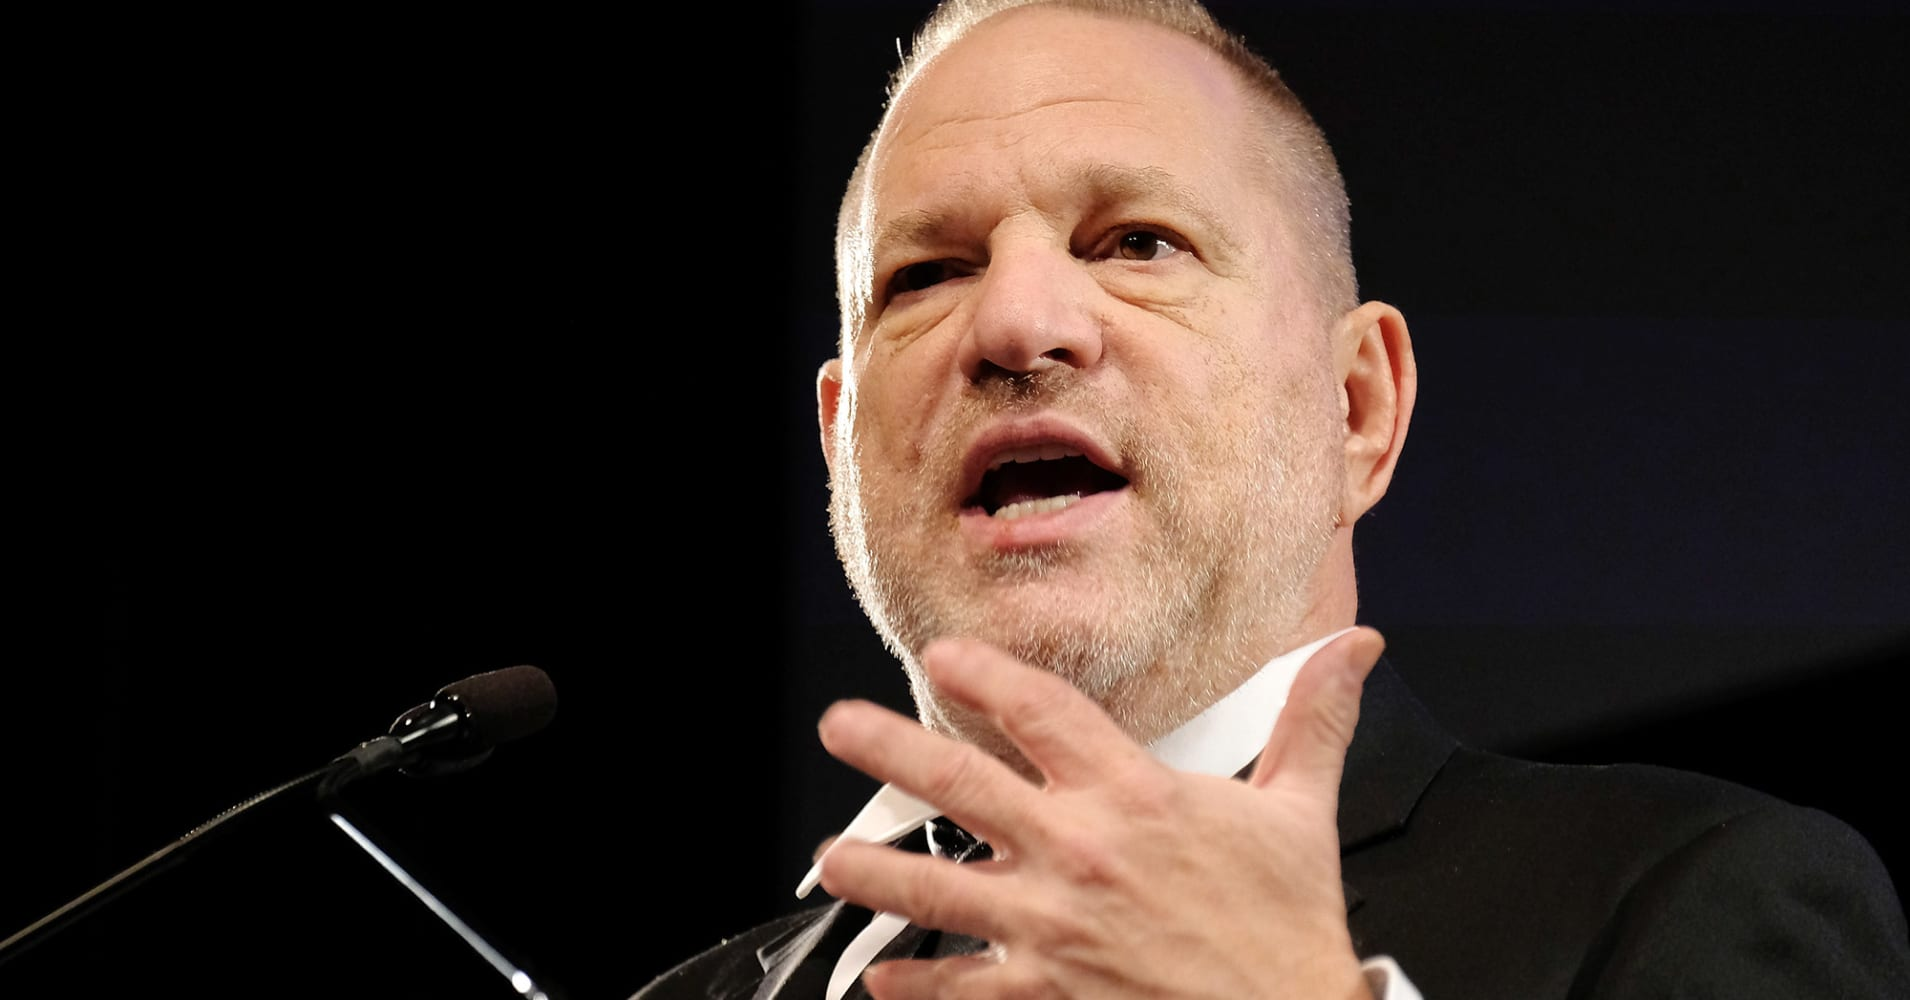 Harvey Weinstein fired by The Weinstein Company after sexual harassment allegations